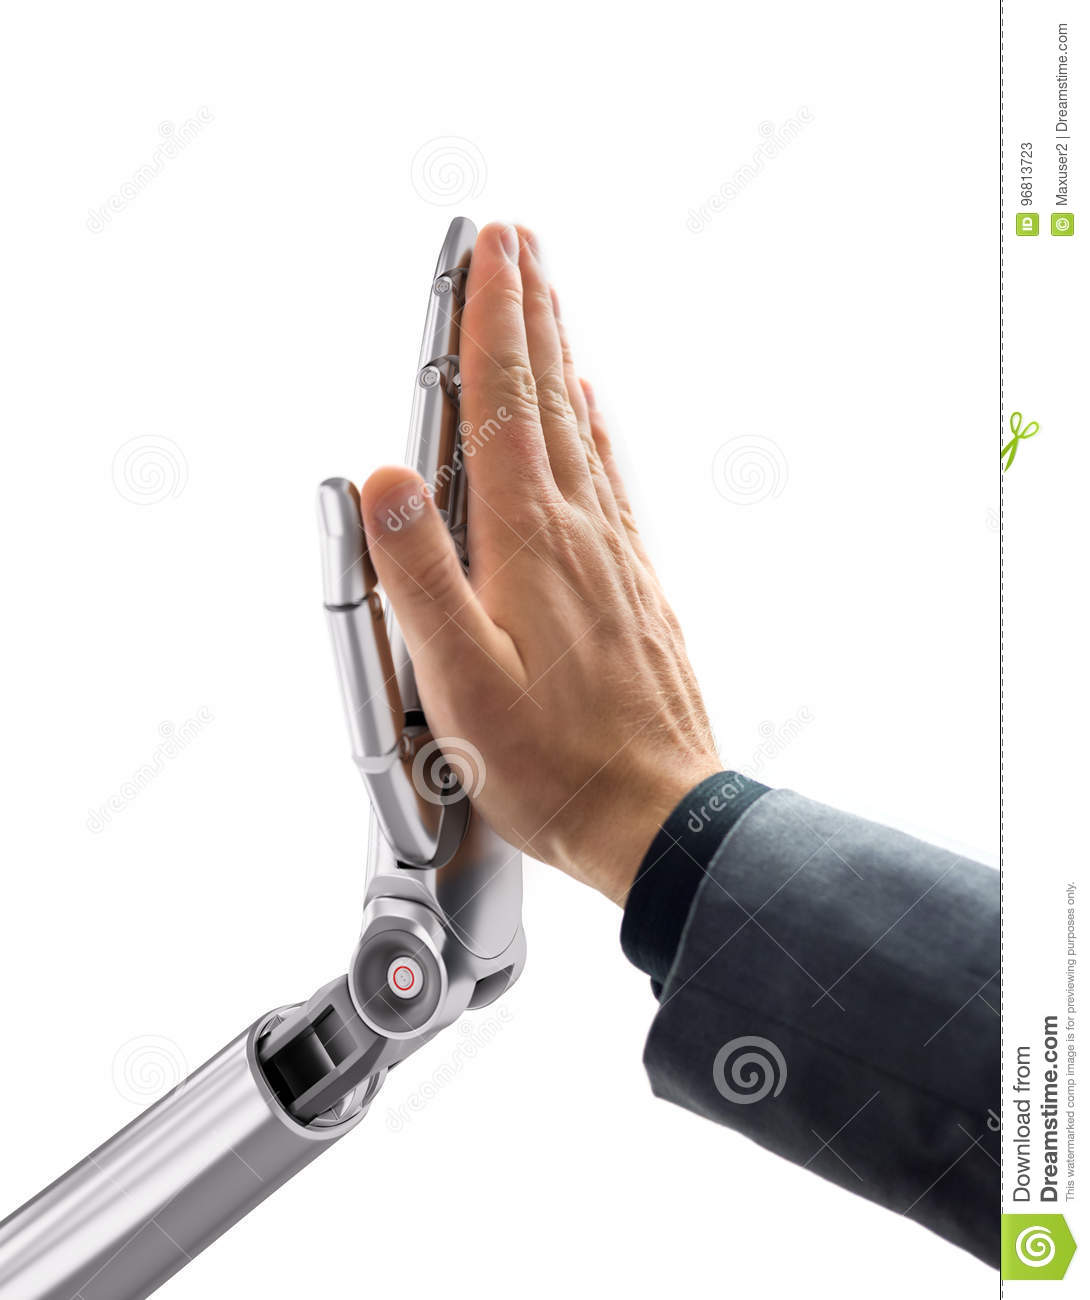 Robot and Human Giving a High Five. Artificial Intelligence Technology 3d Illustration